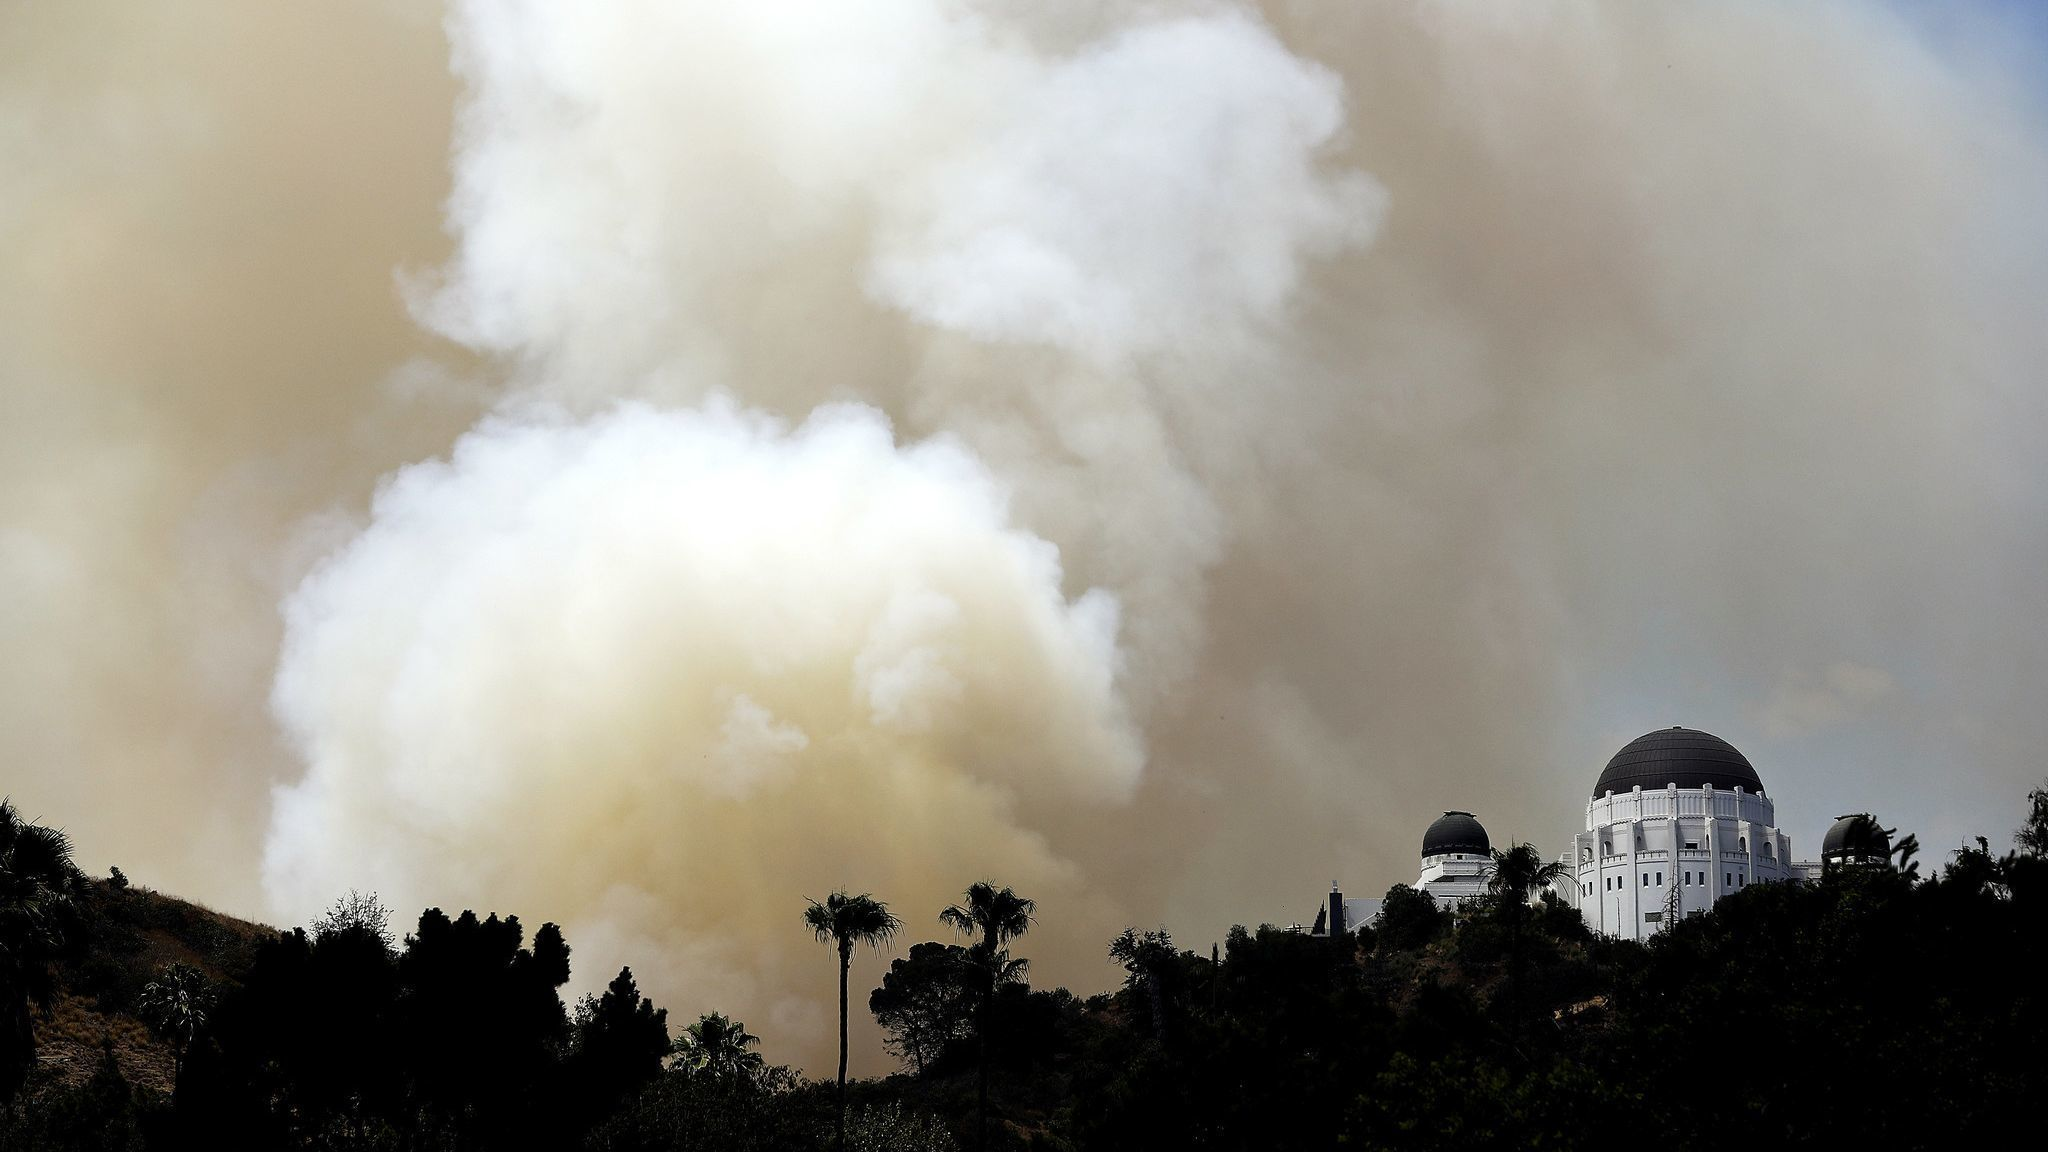 Firefighters tackle brush fire in Griffith Park